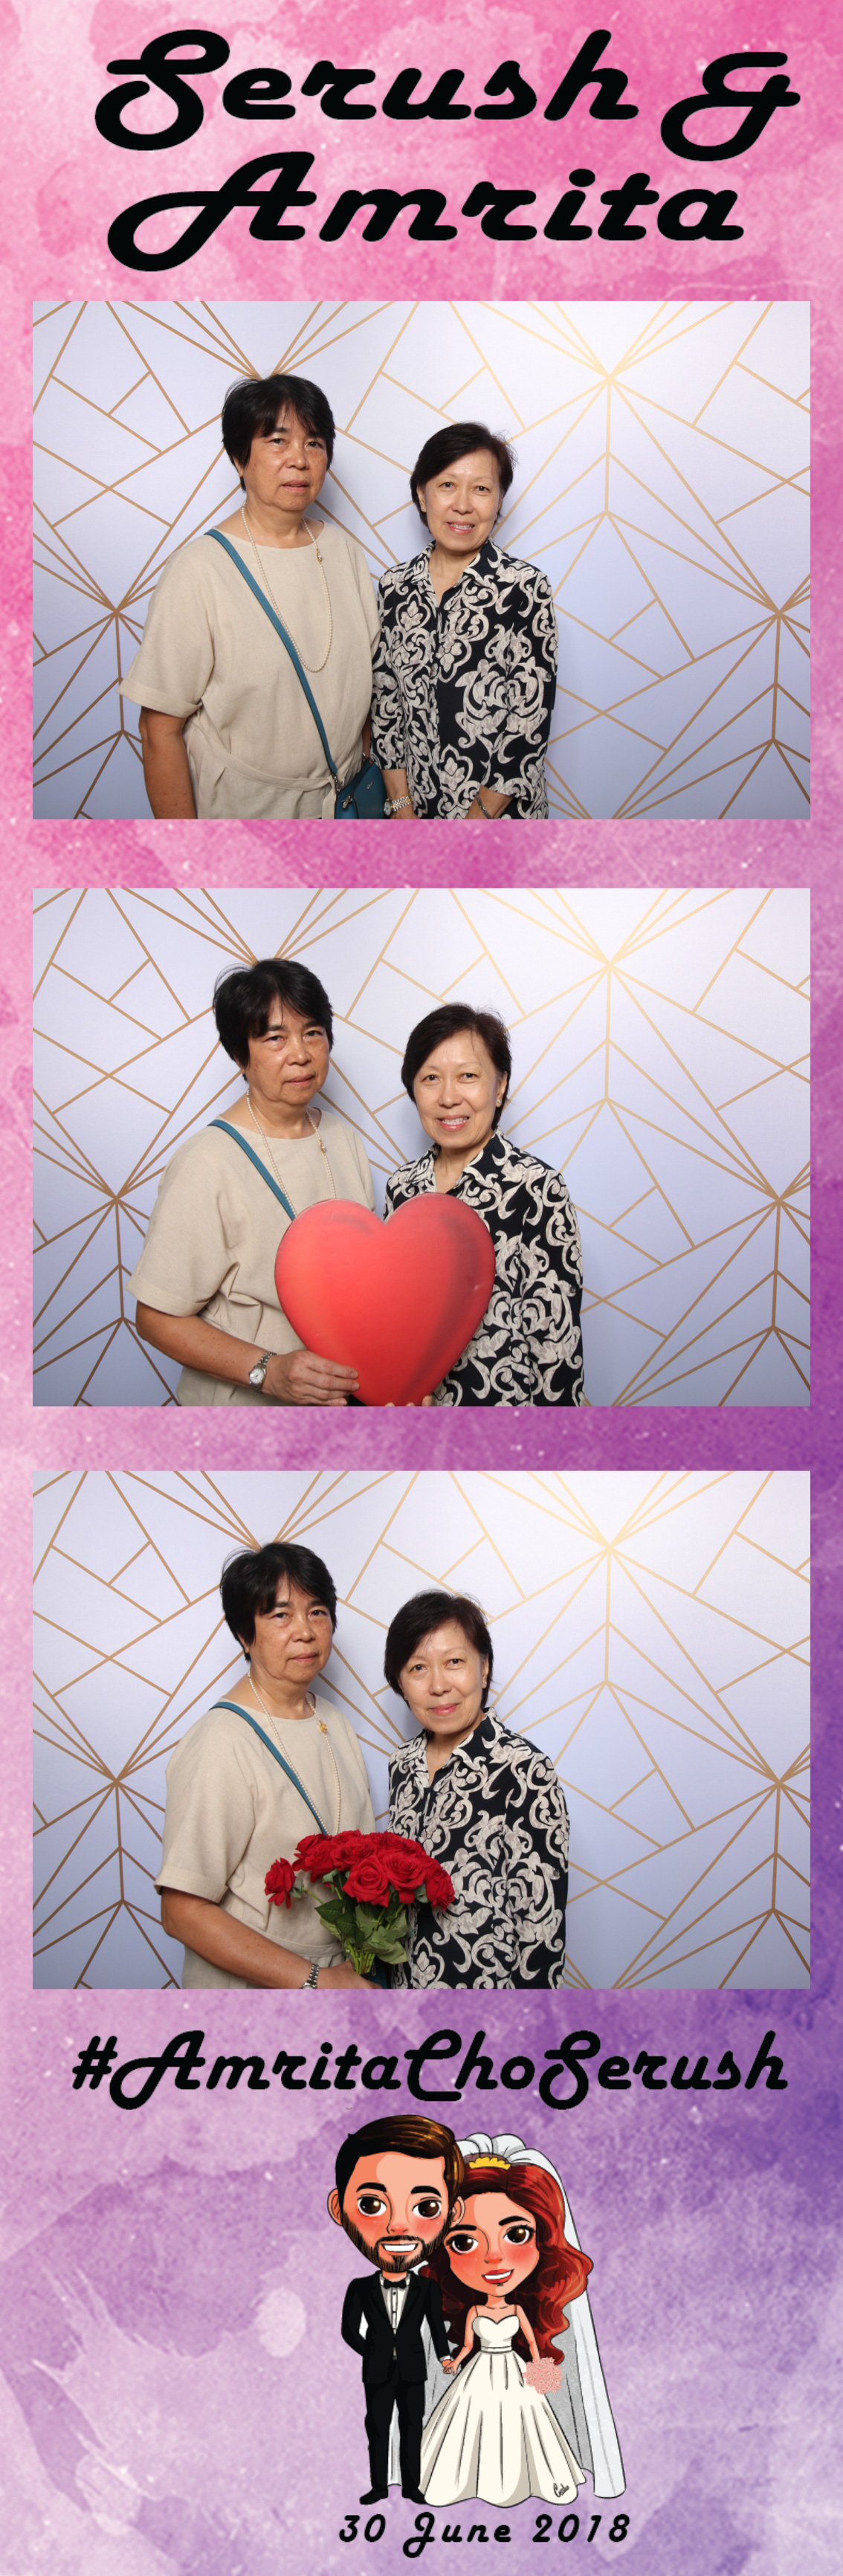 whoots photo booth singapore wedding (23